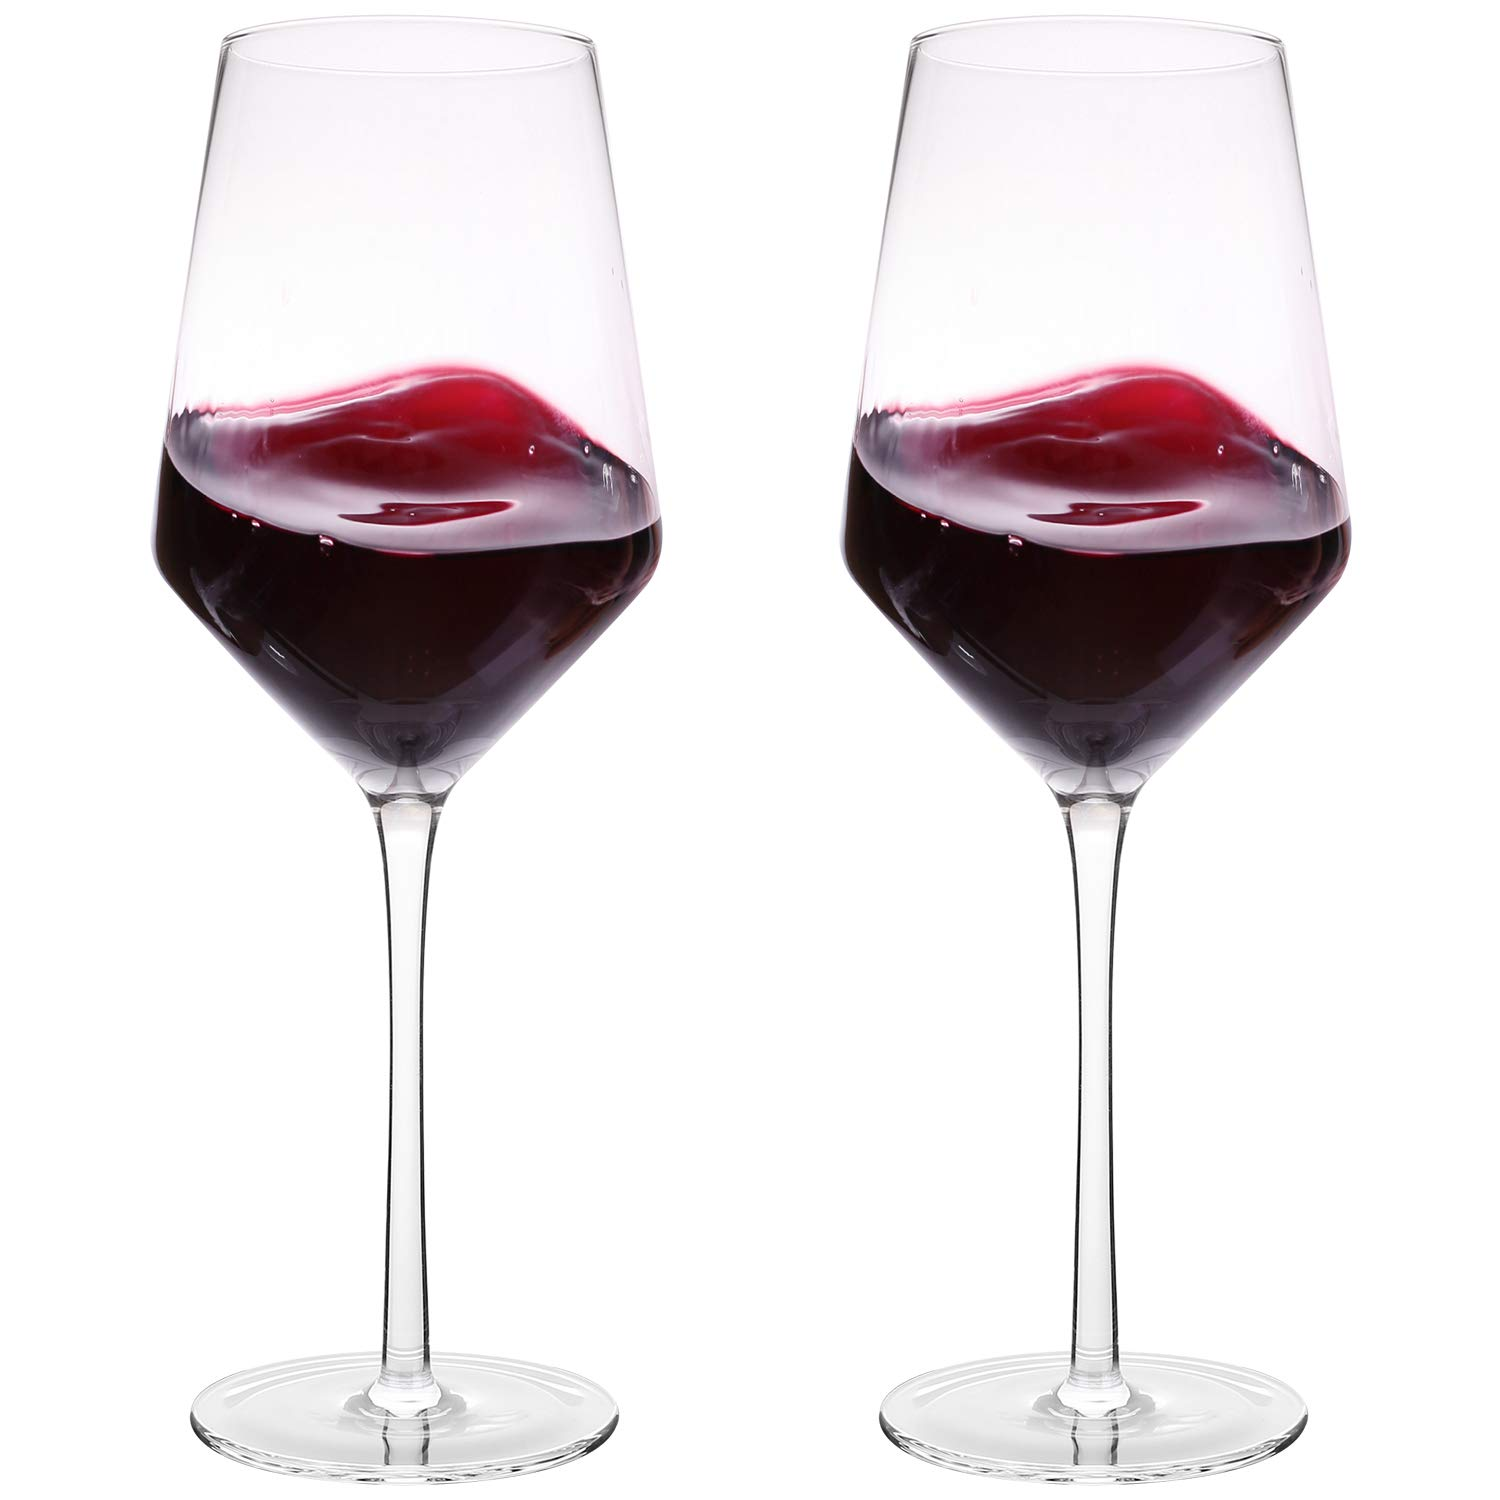 Hand Blown Crystal Wine Glasses - Bella Vino Classy Red/White Wine Glass Made from 100% Lead-Free Premium Crystal Glass, 16 Oz, 9'', Perfect for Any Occasion, Great Gift, Set of 2, Clear by Bella Vino